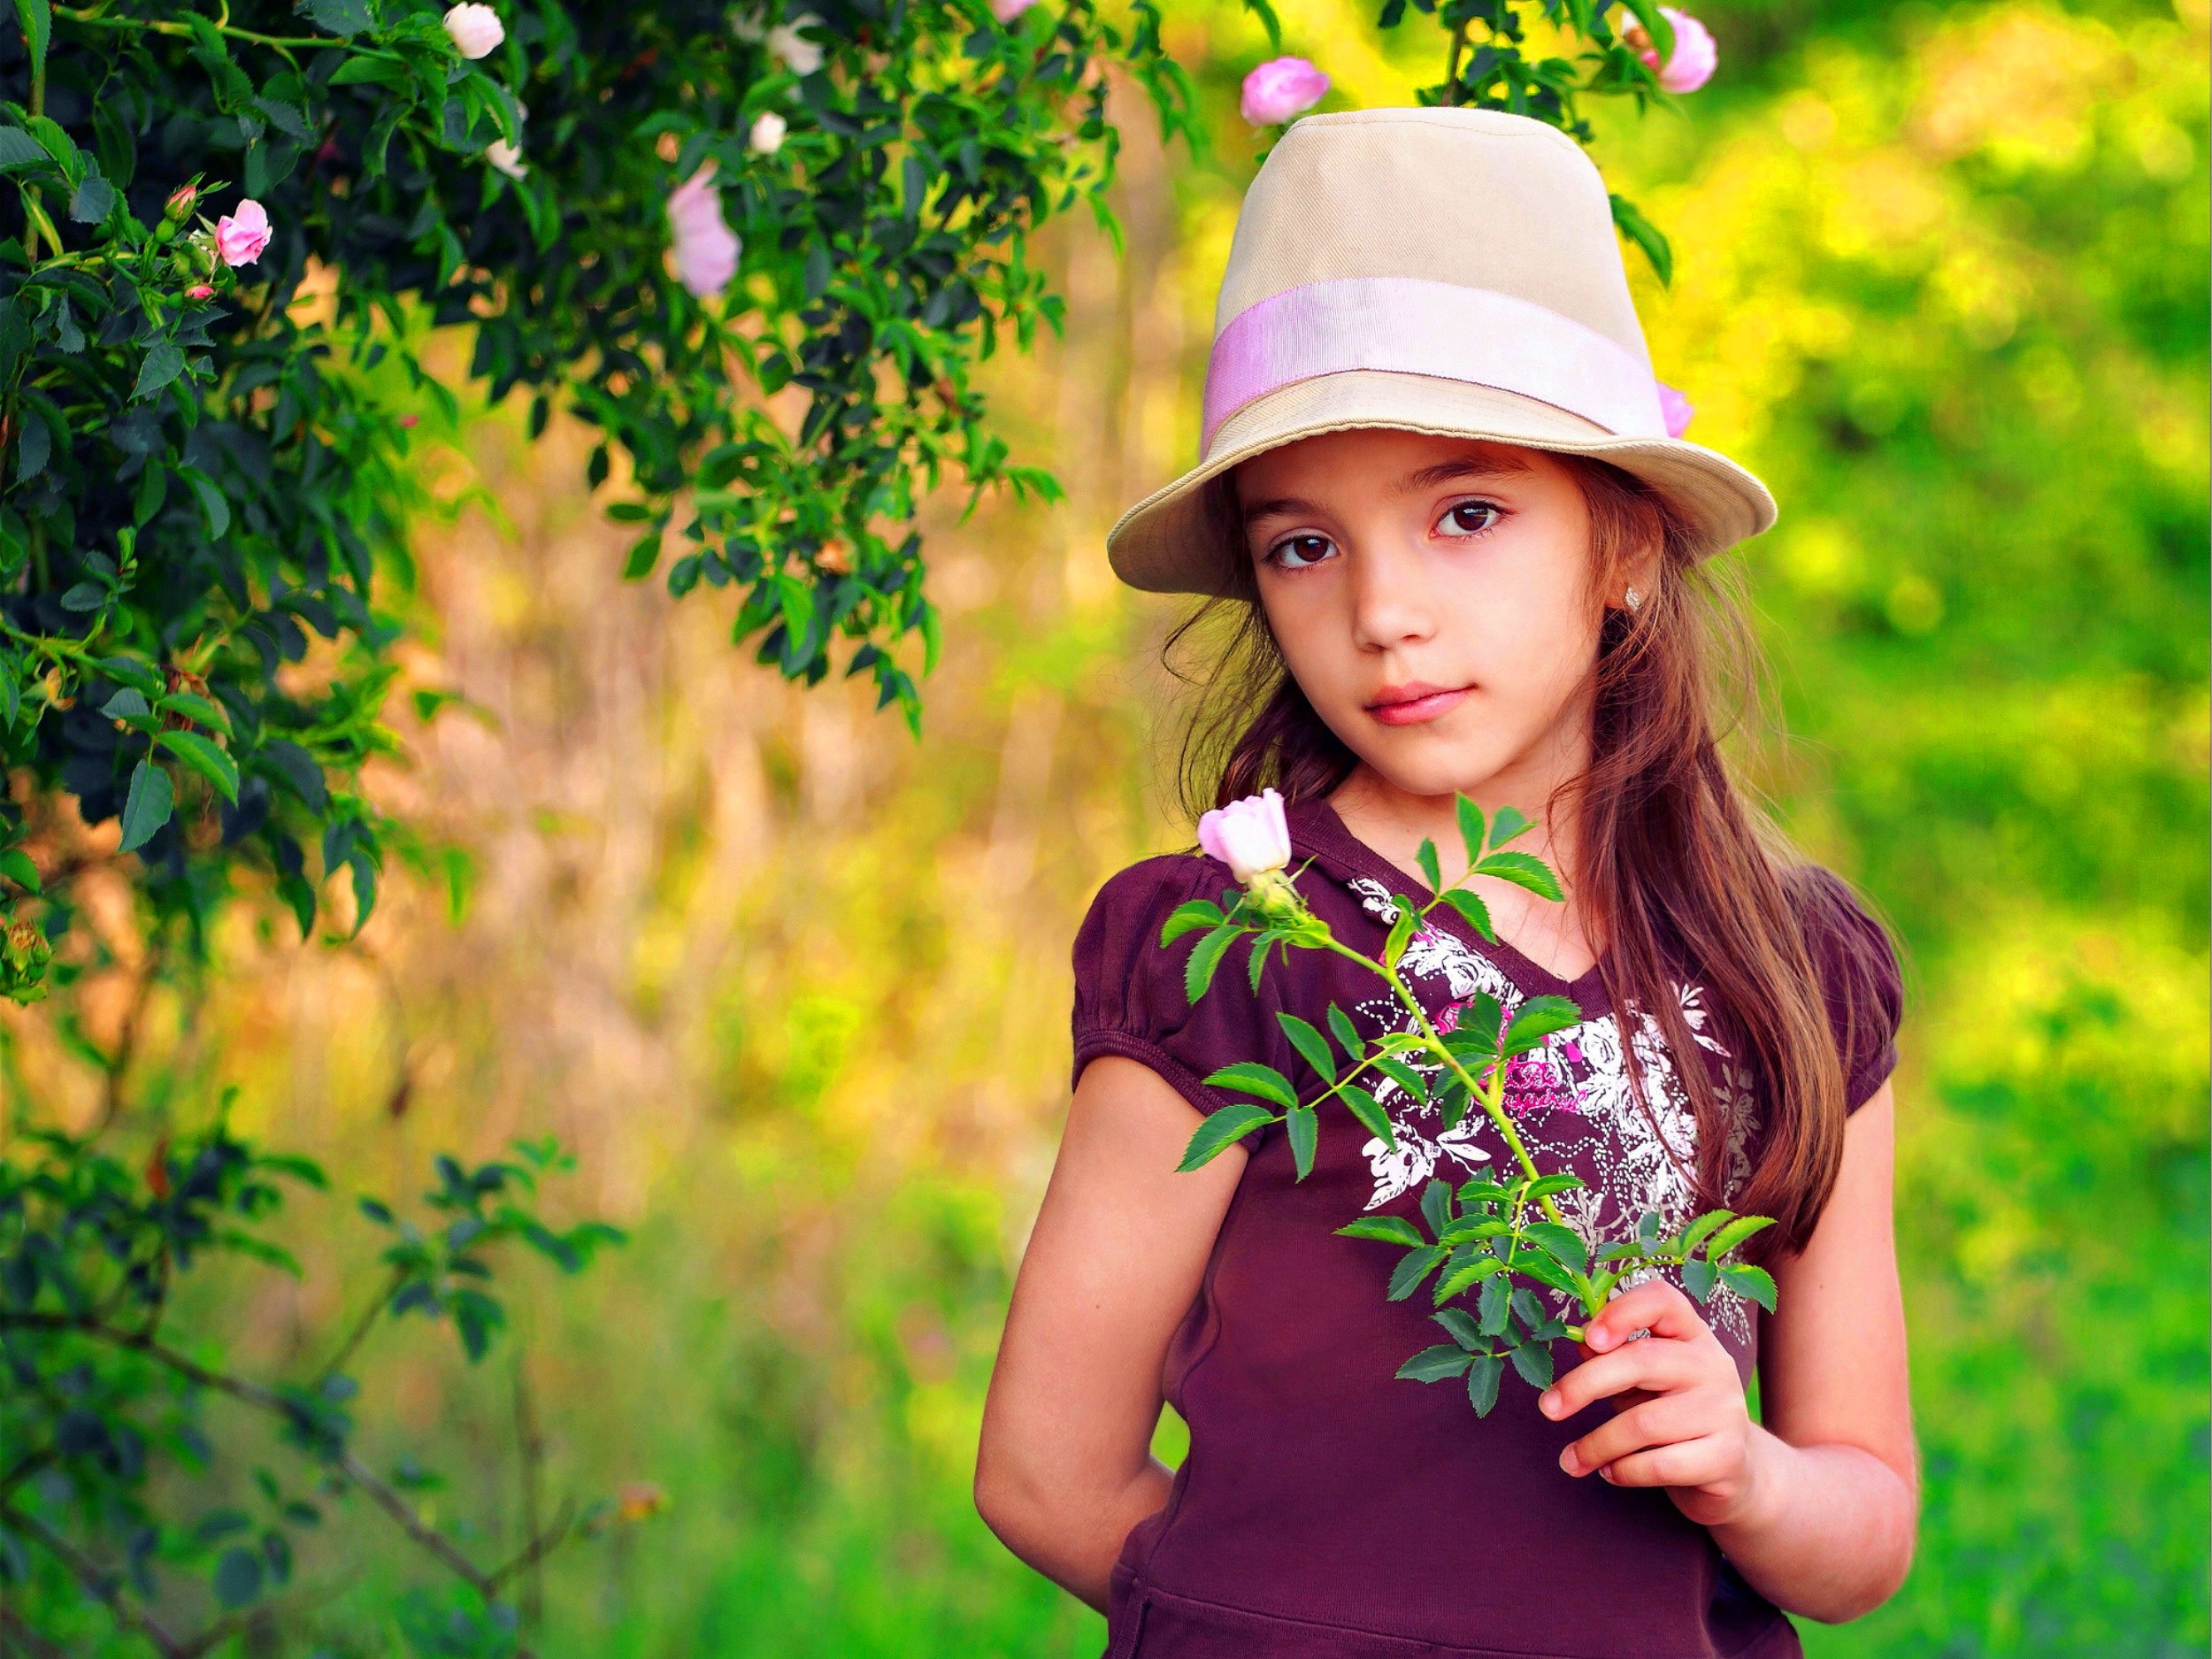 Best Quality Cute Girl Images For Whatsapp Dp Wallpaper Download